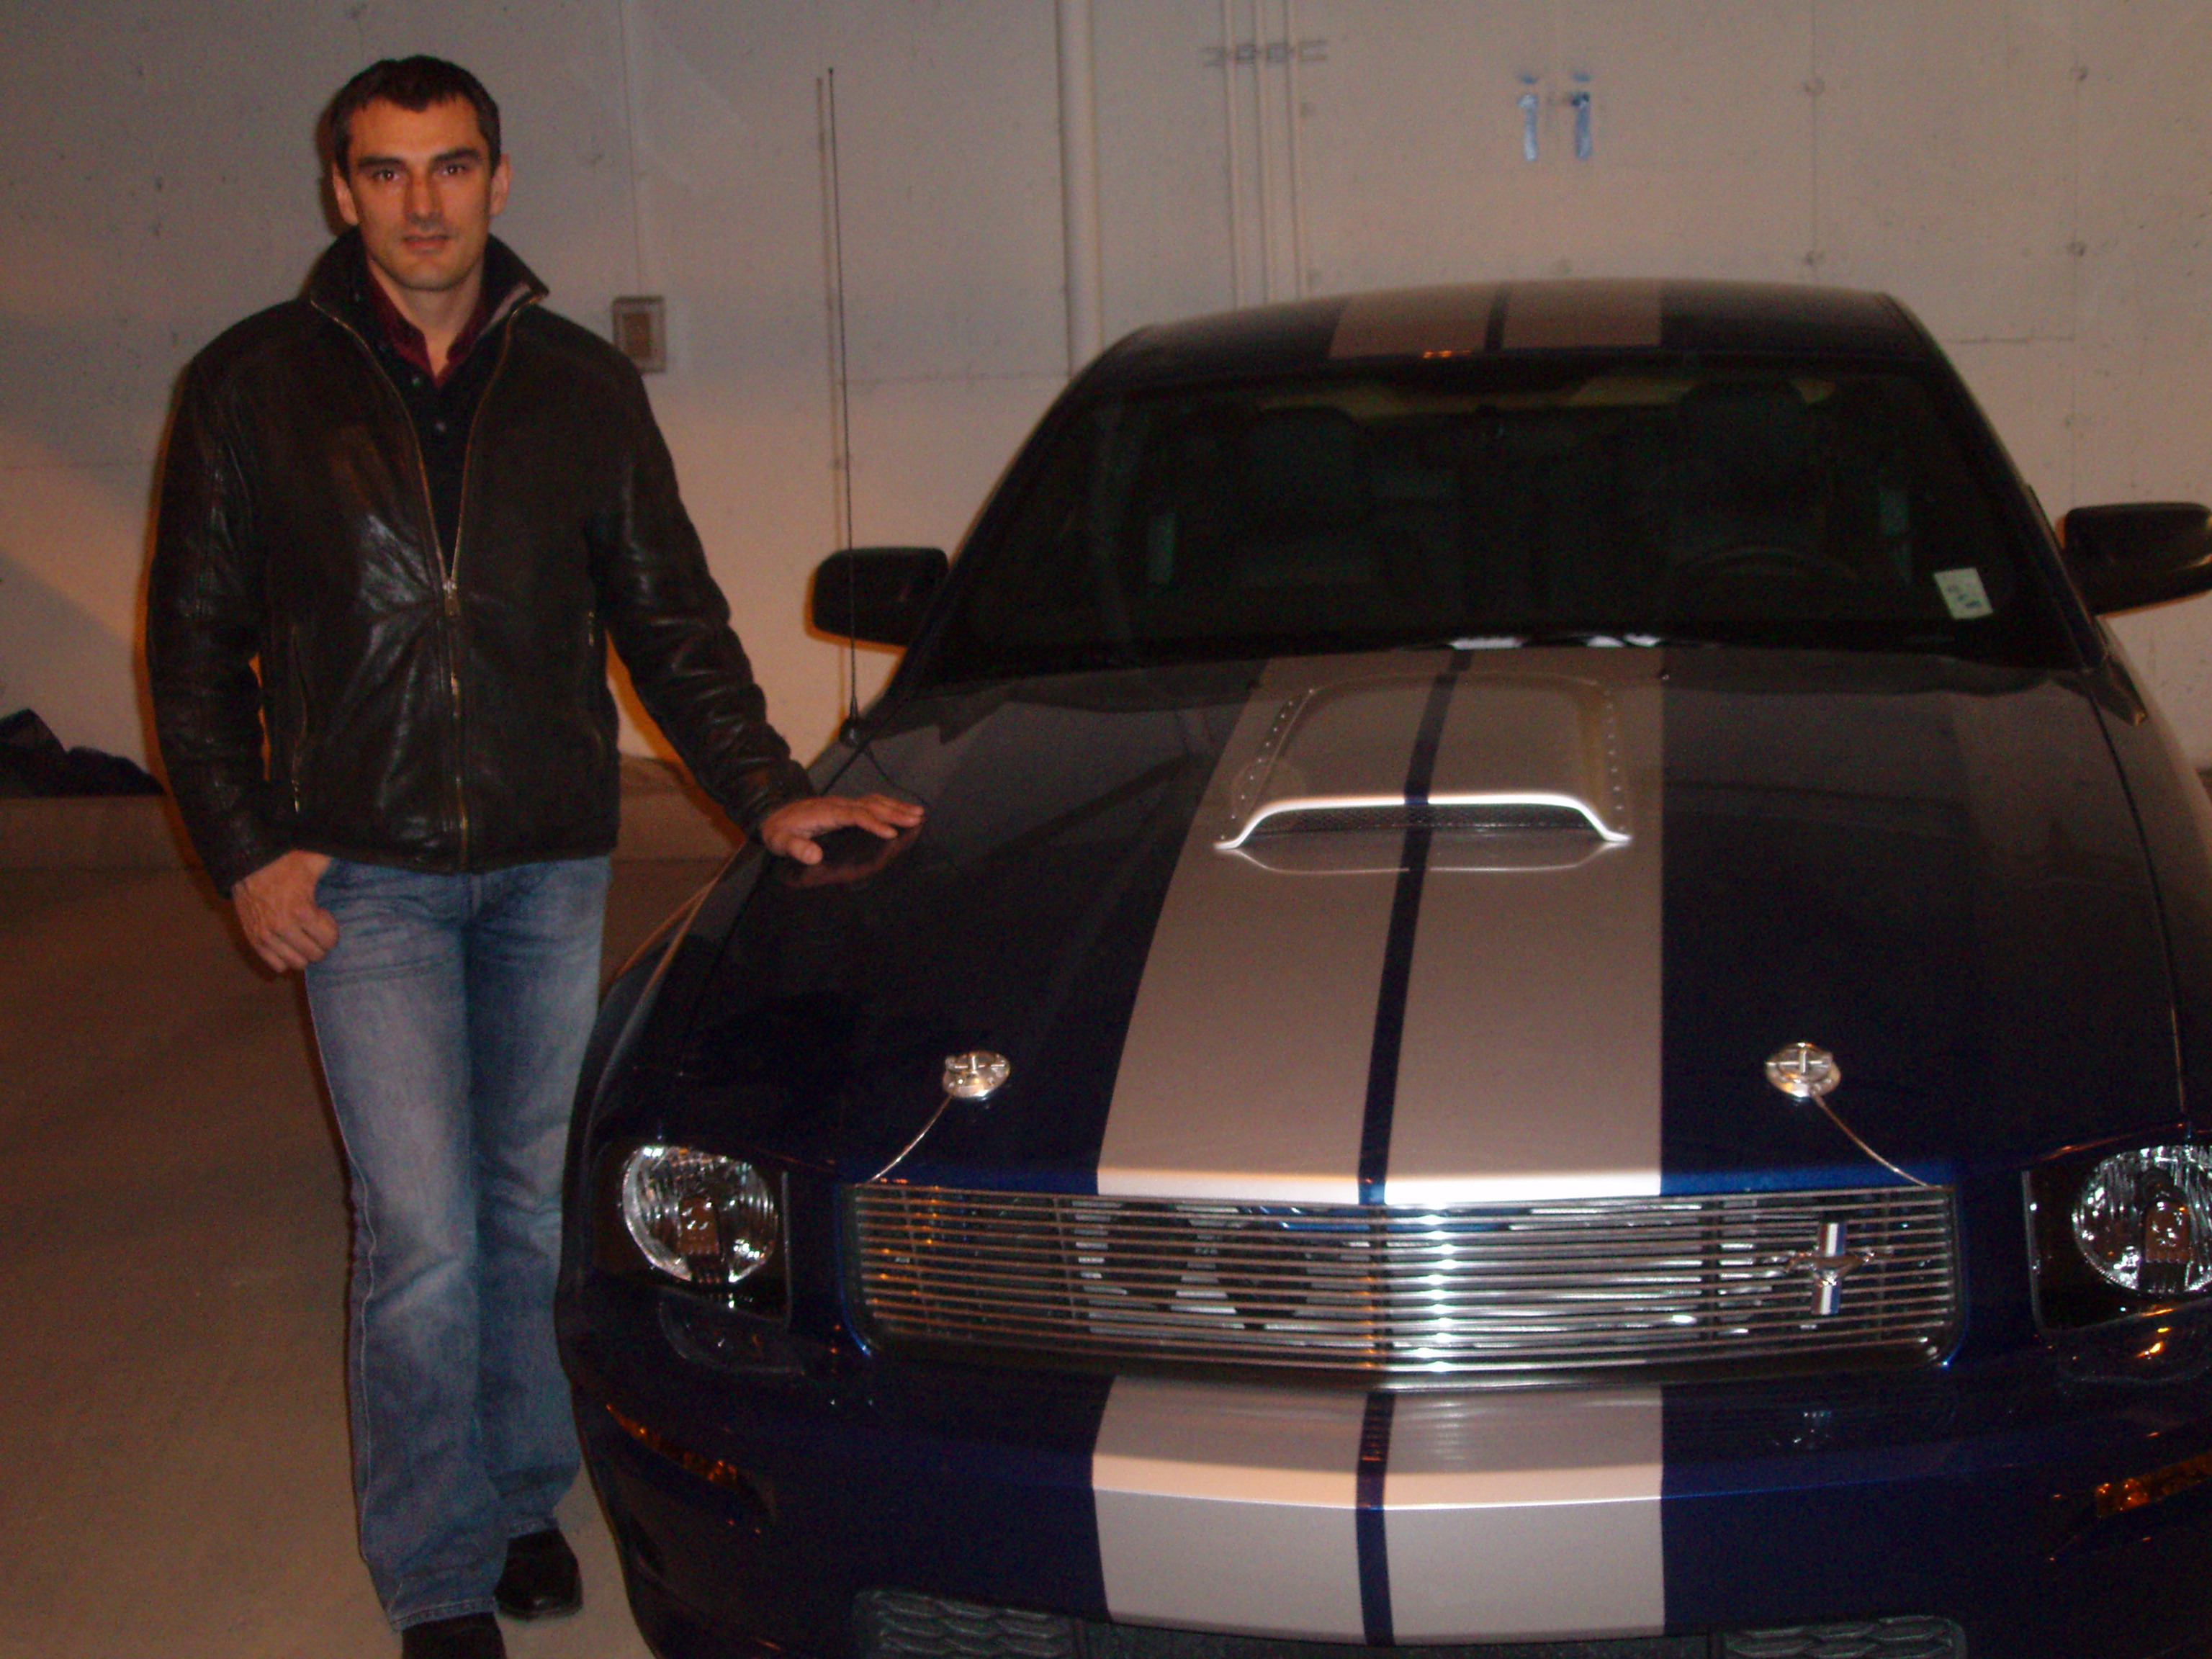 Click image for larger version  Name:Me & My 08.JPG Views:109 Size:1.57 MB ID:18992